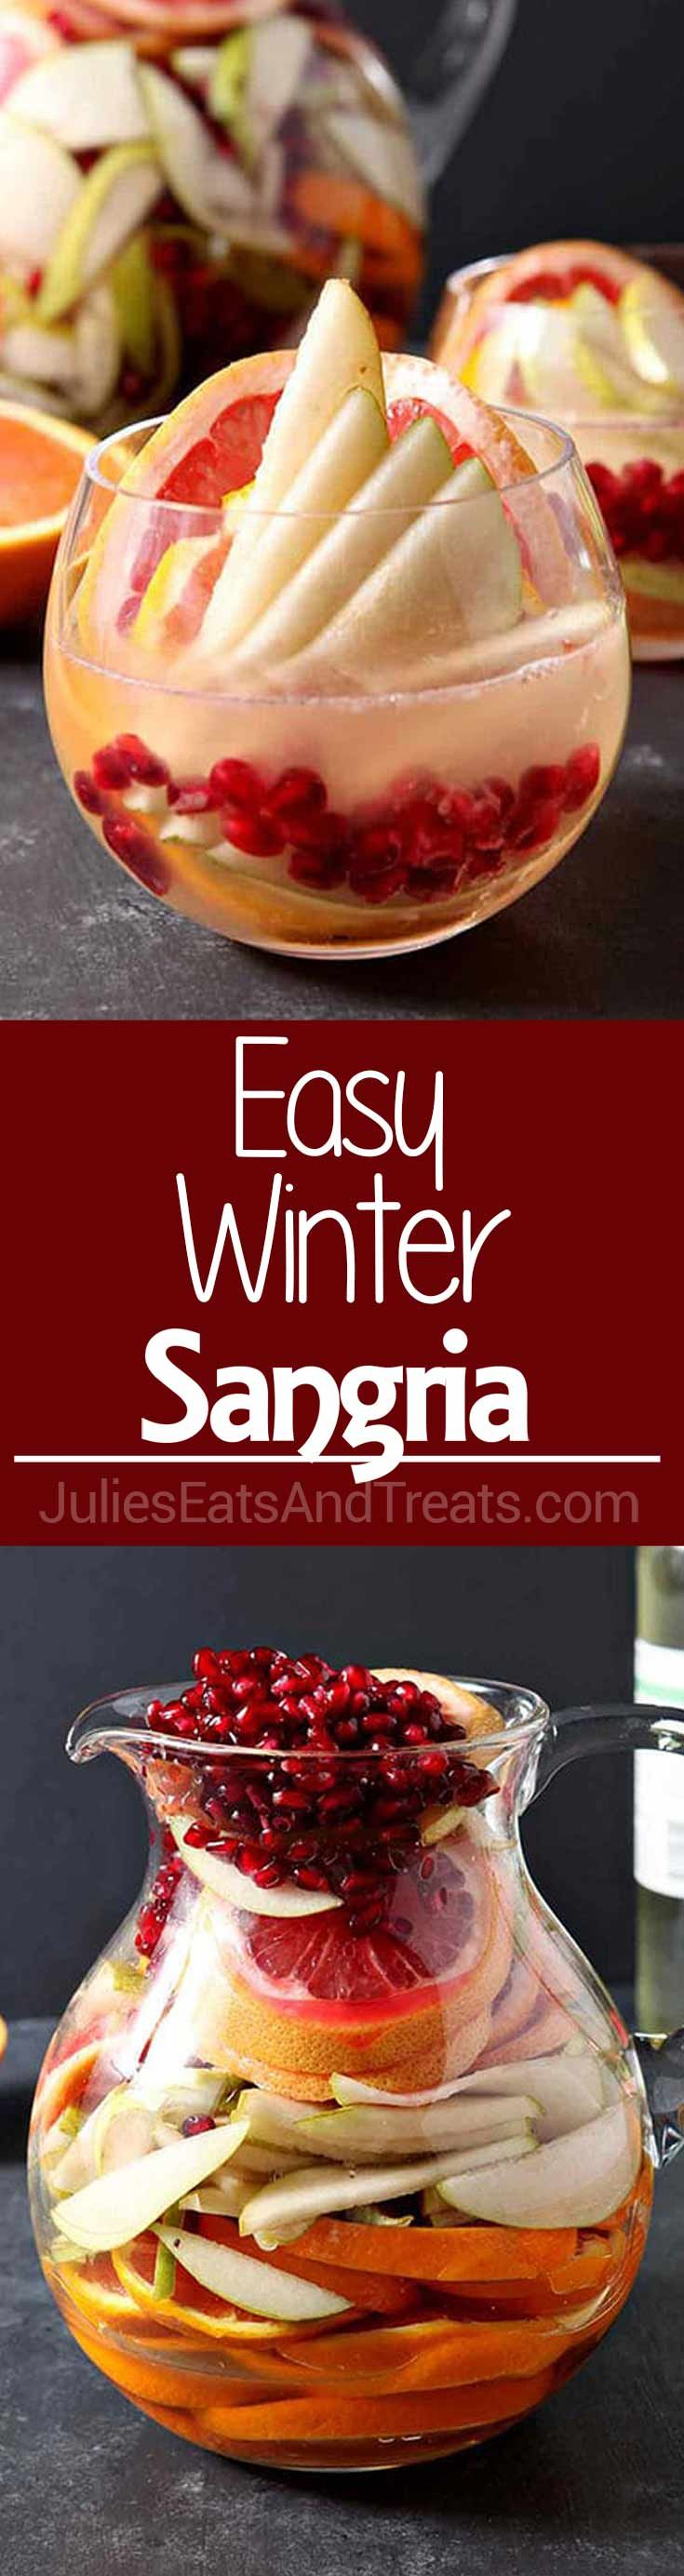 Winter Sangria ~ Full of Pink Grapefruit, Cara Cara or Blood Oranges, Pears and Pomegranates and topped with White Wine and Mint Simple Syrup! This Sangria is Bursting with Flavor! ~ https://www.julieseatsandtreats.com